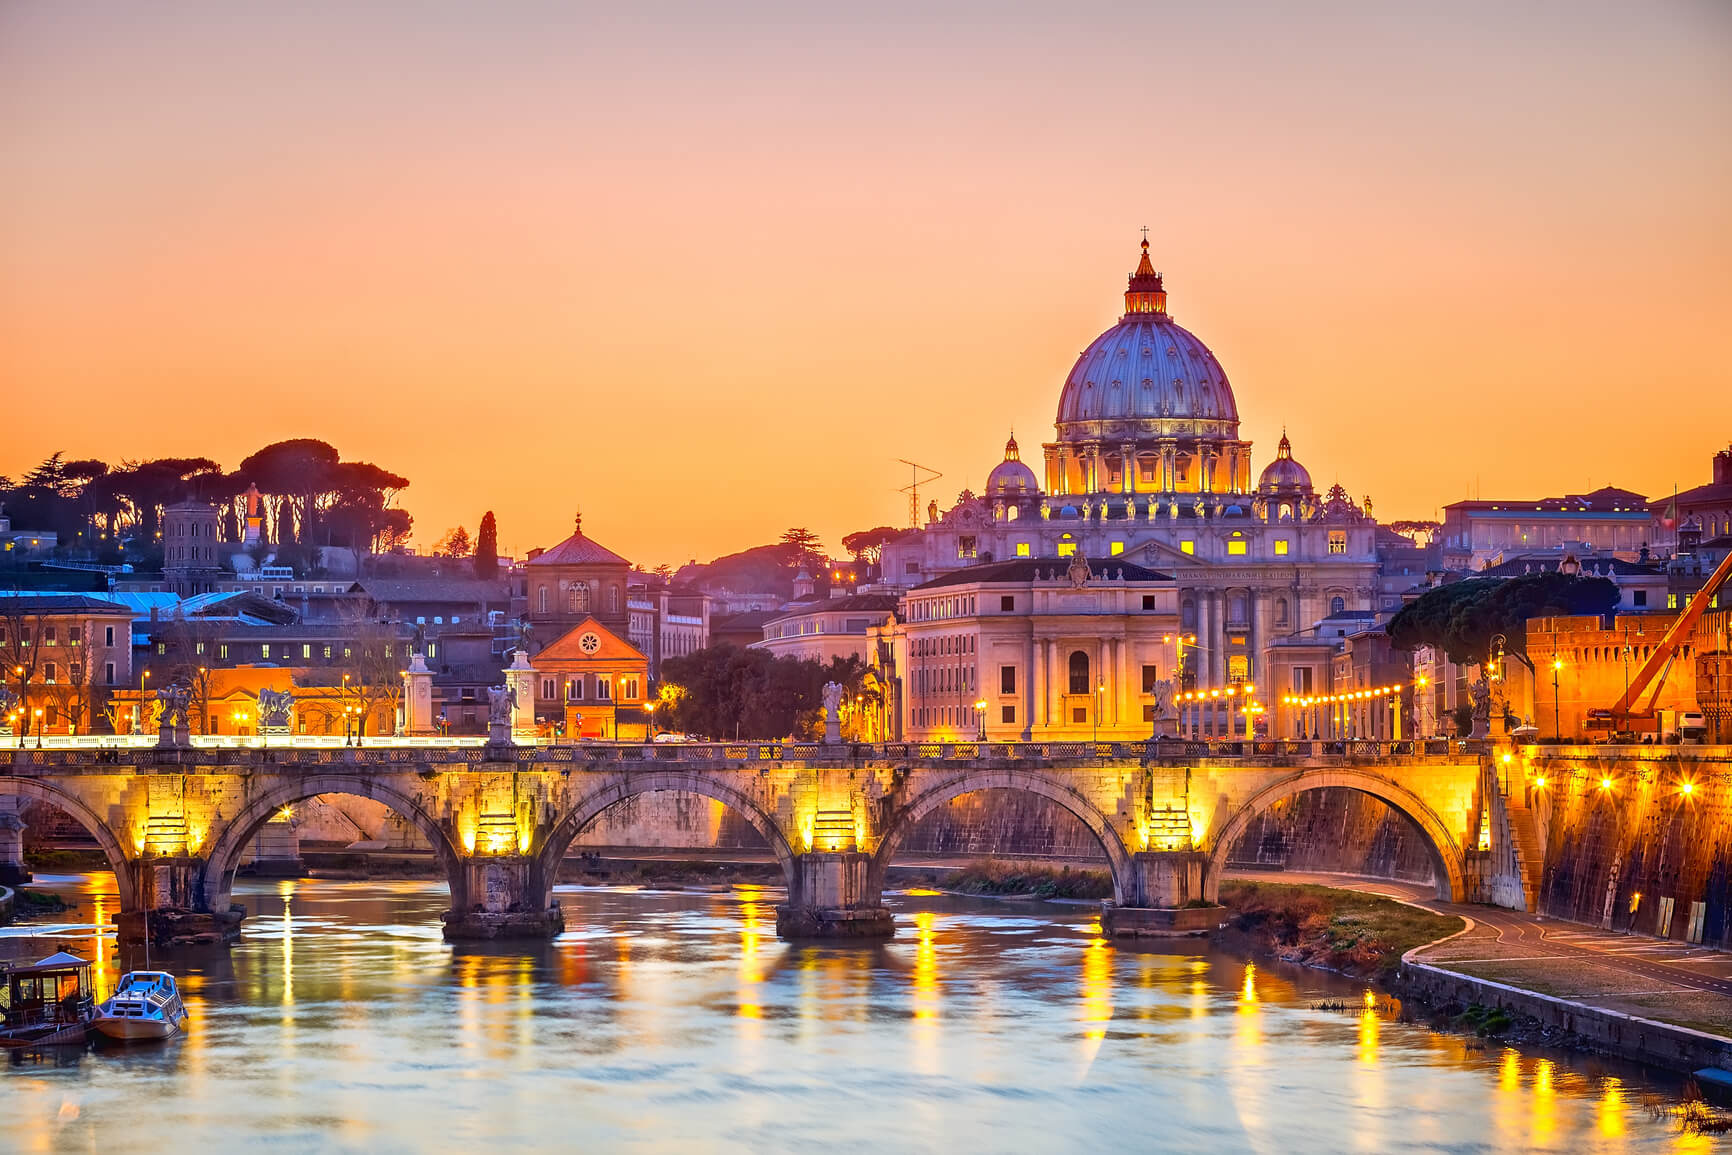 Hong Kong to Rome, Italy for only $387 USD roundtrip